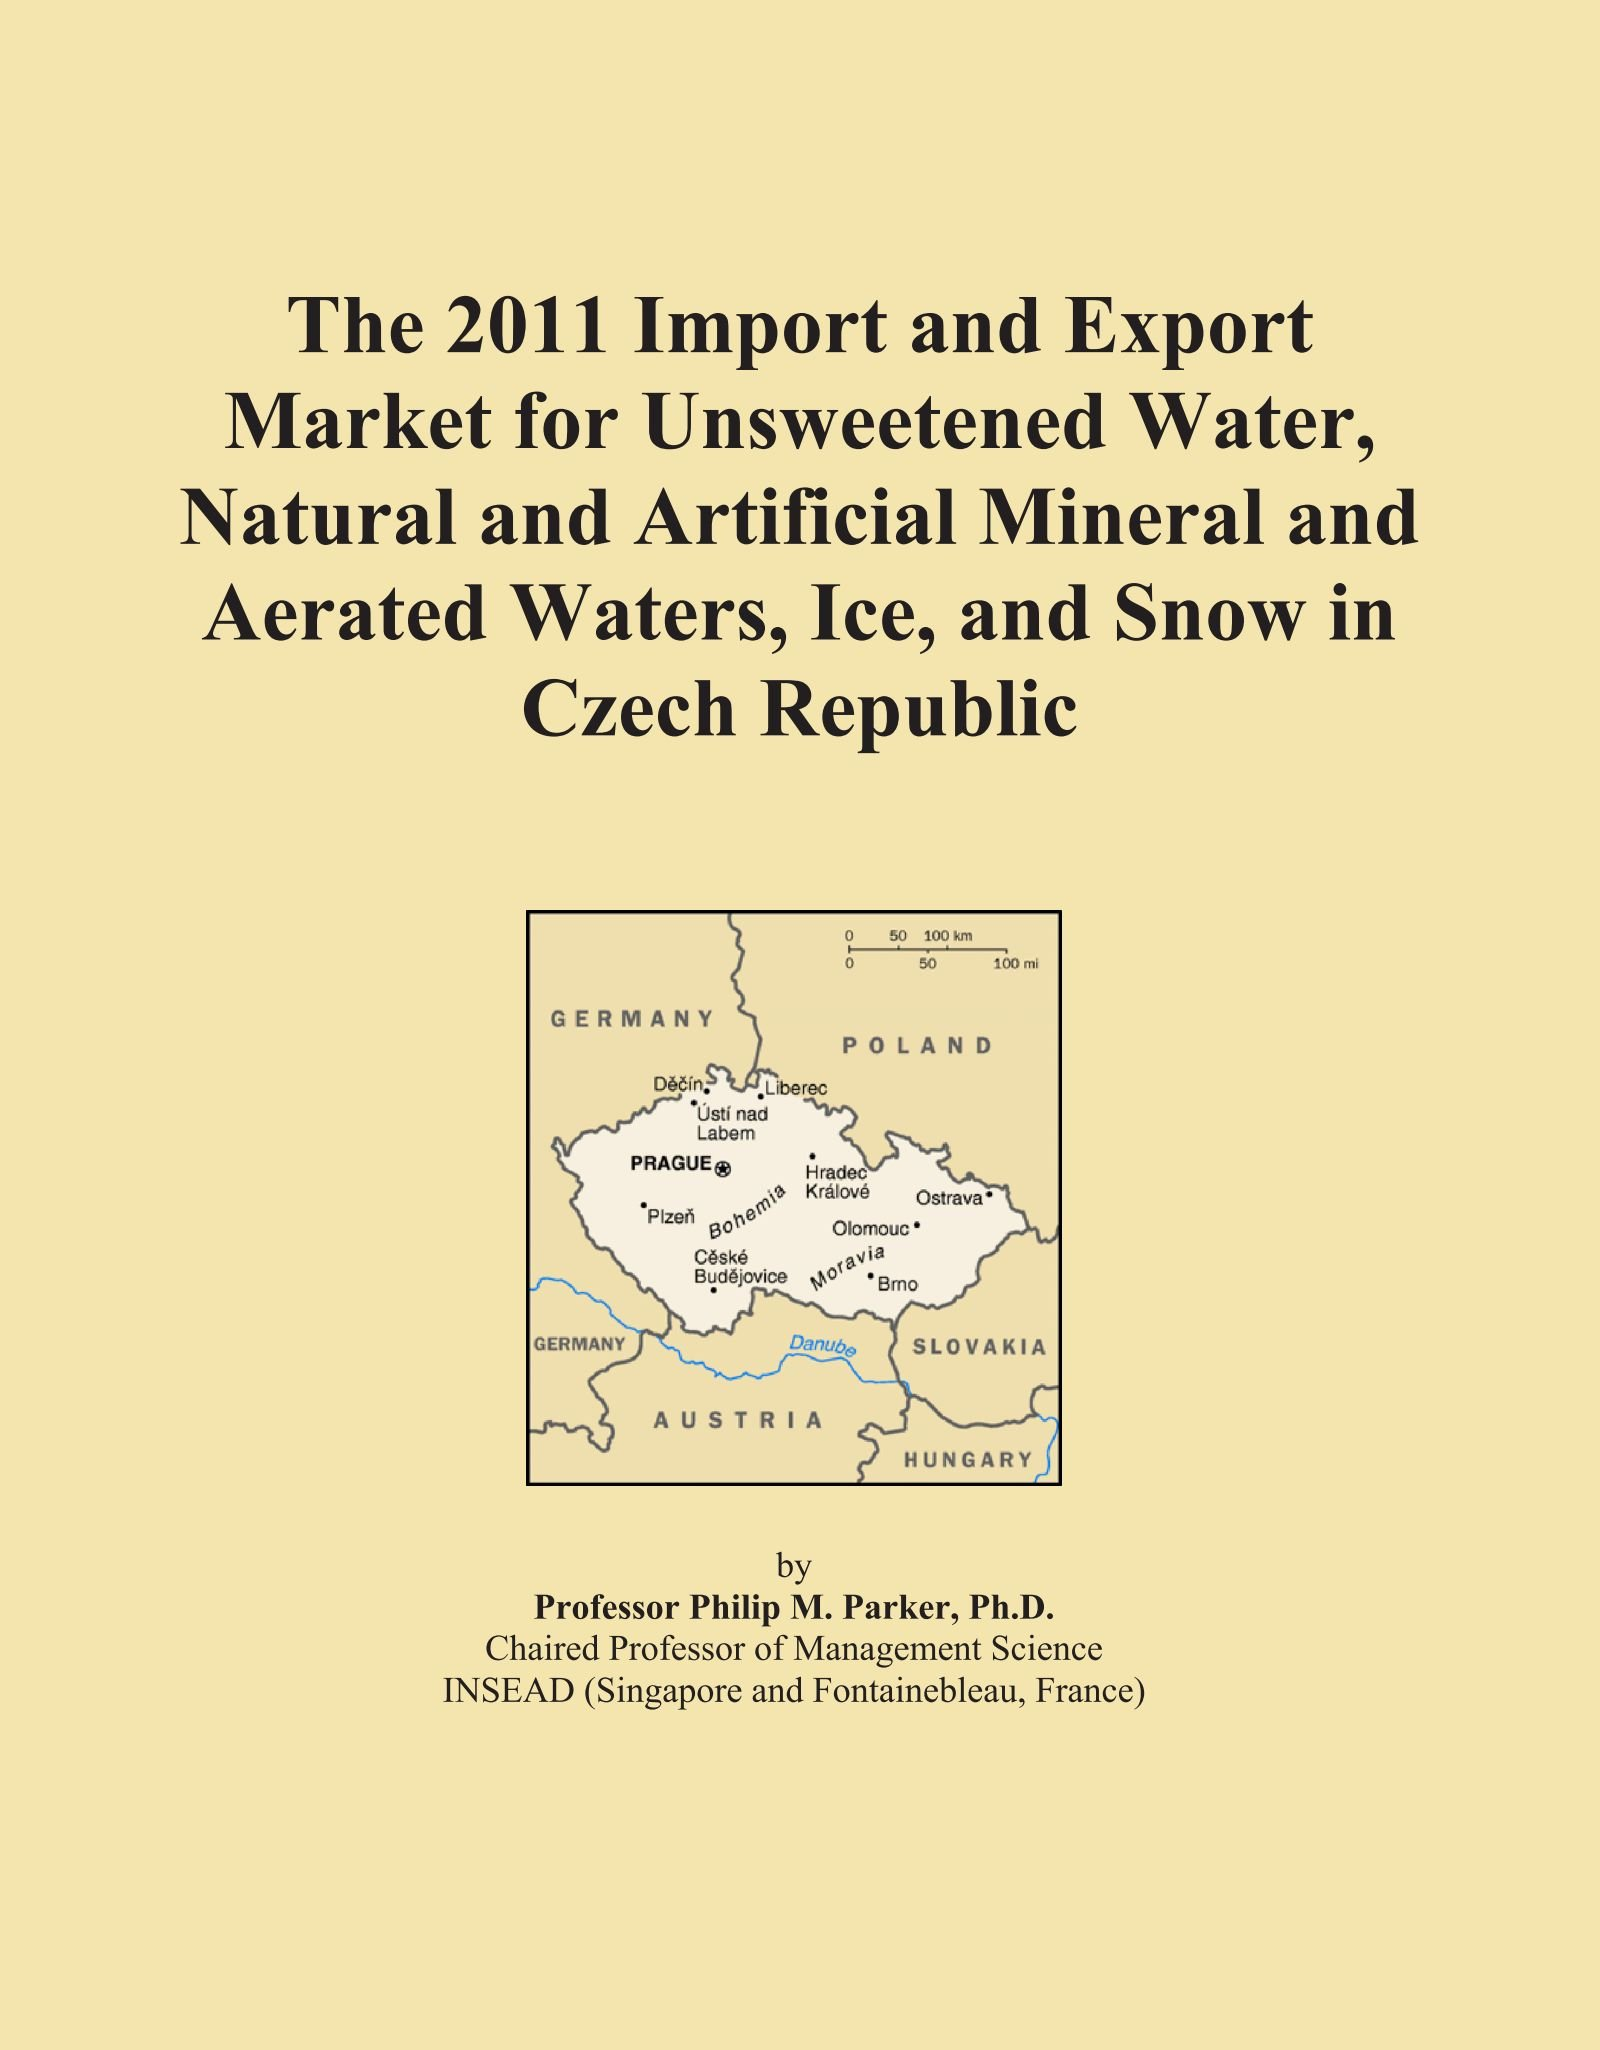 The 2011 Import and Export Market for Unsweetened Water, Natural and Artificial Mineral and Aerated Waters, Ice, and Snow in Czech Republic pdf